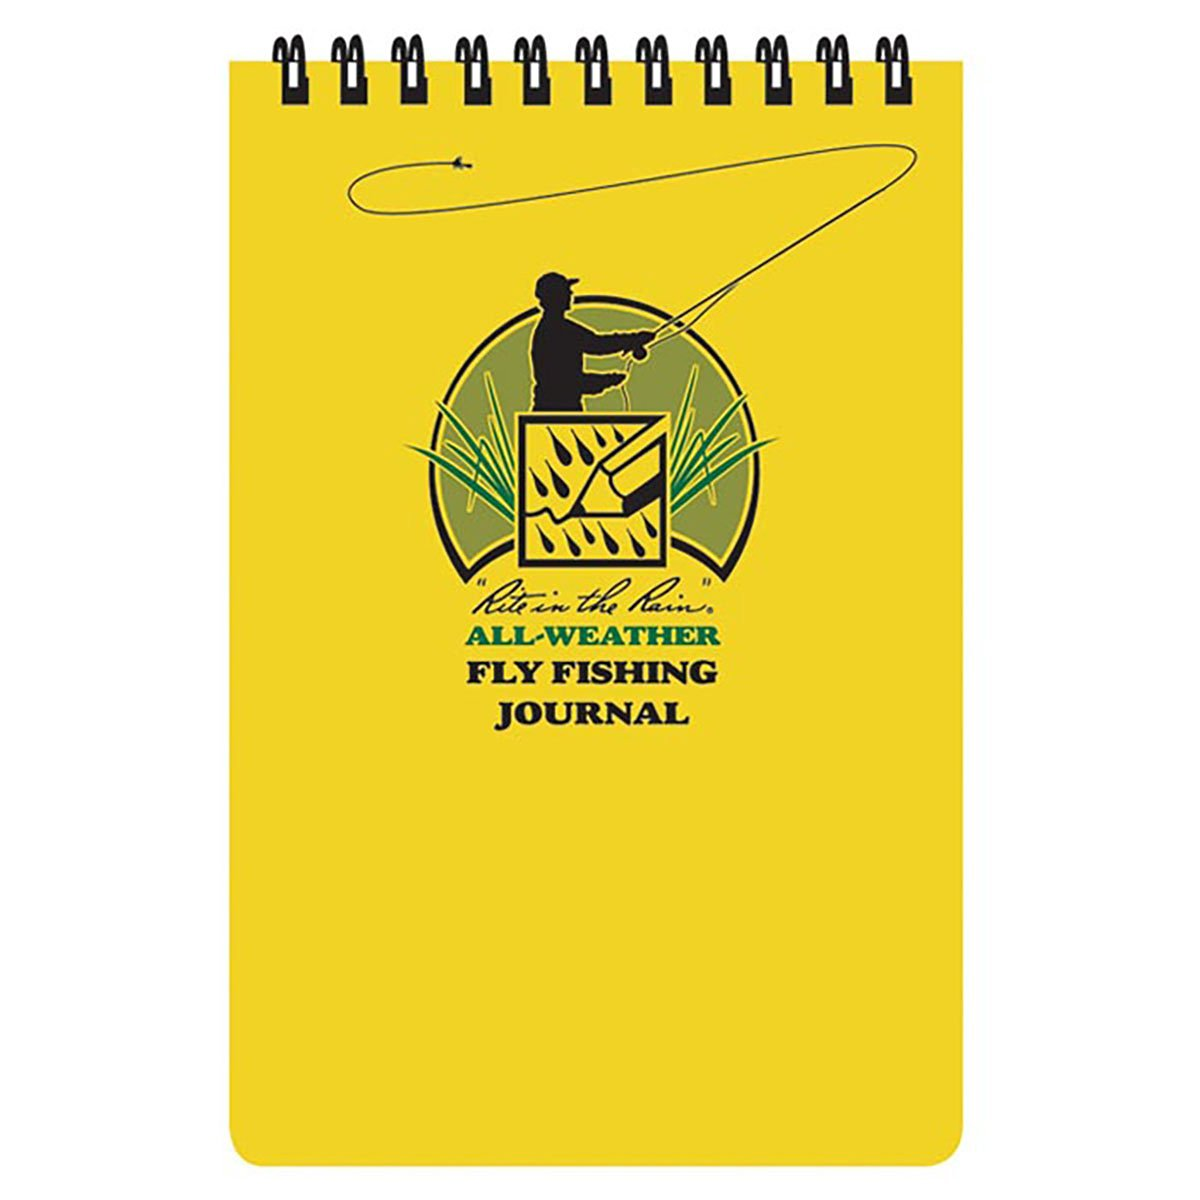 Rite in the Rain -Fly Fishing Journal (All Weather)